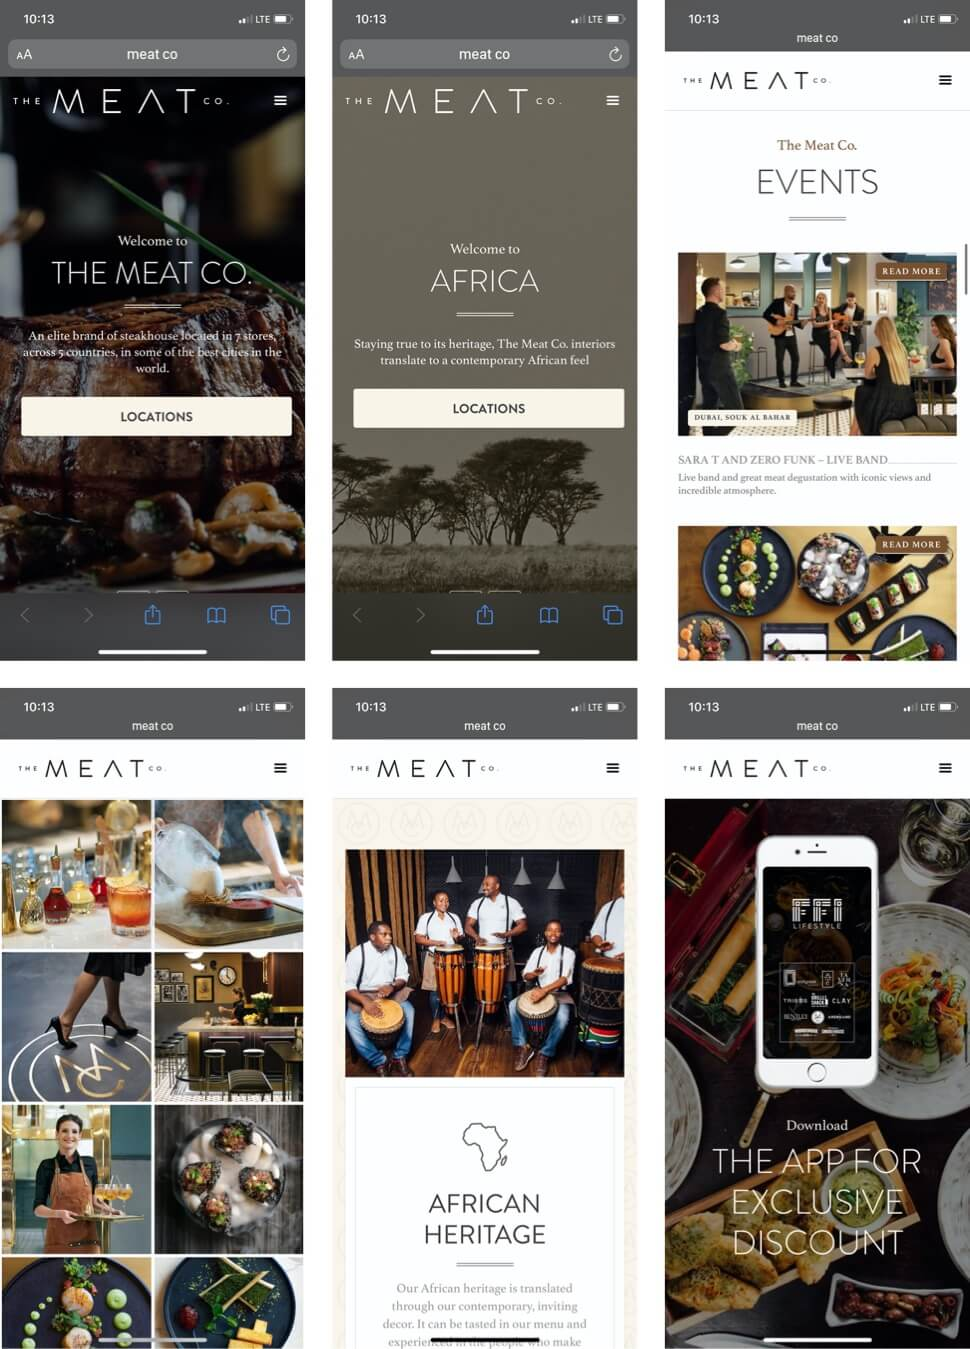 Restaurant mobile website design Dubai